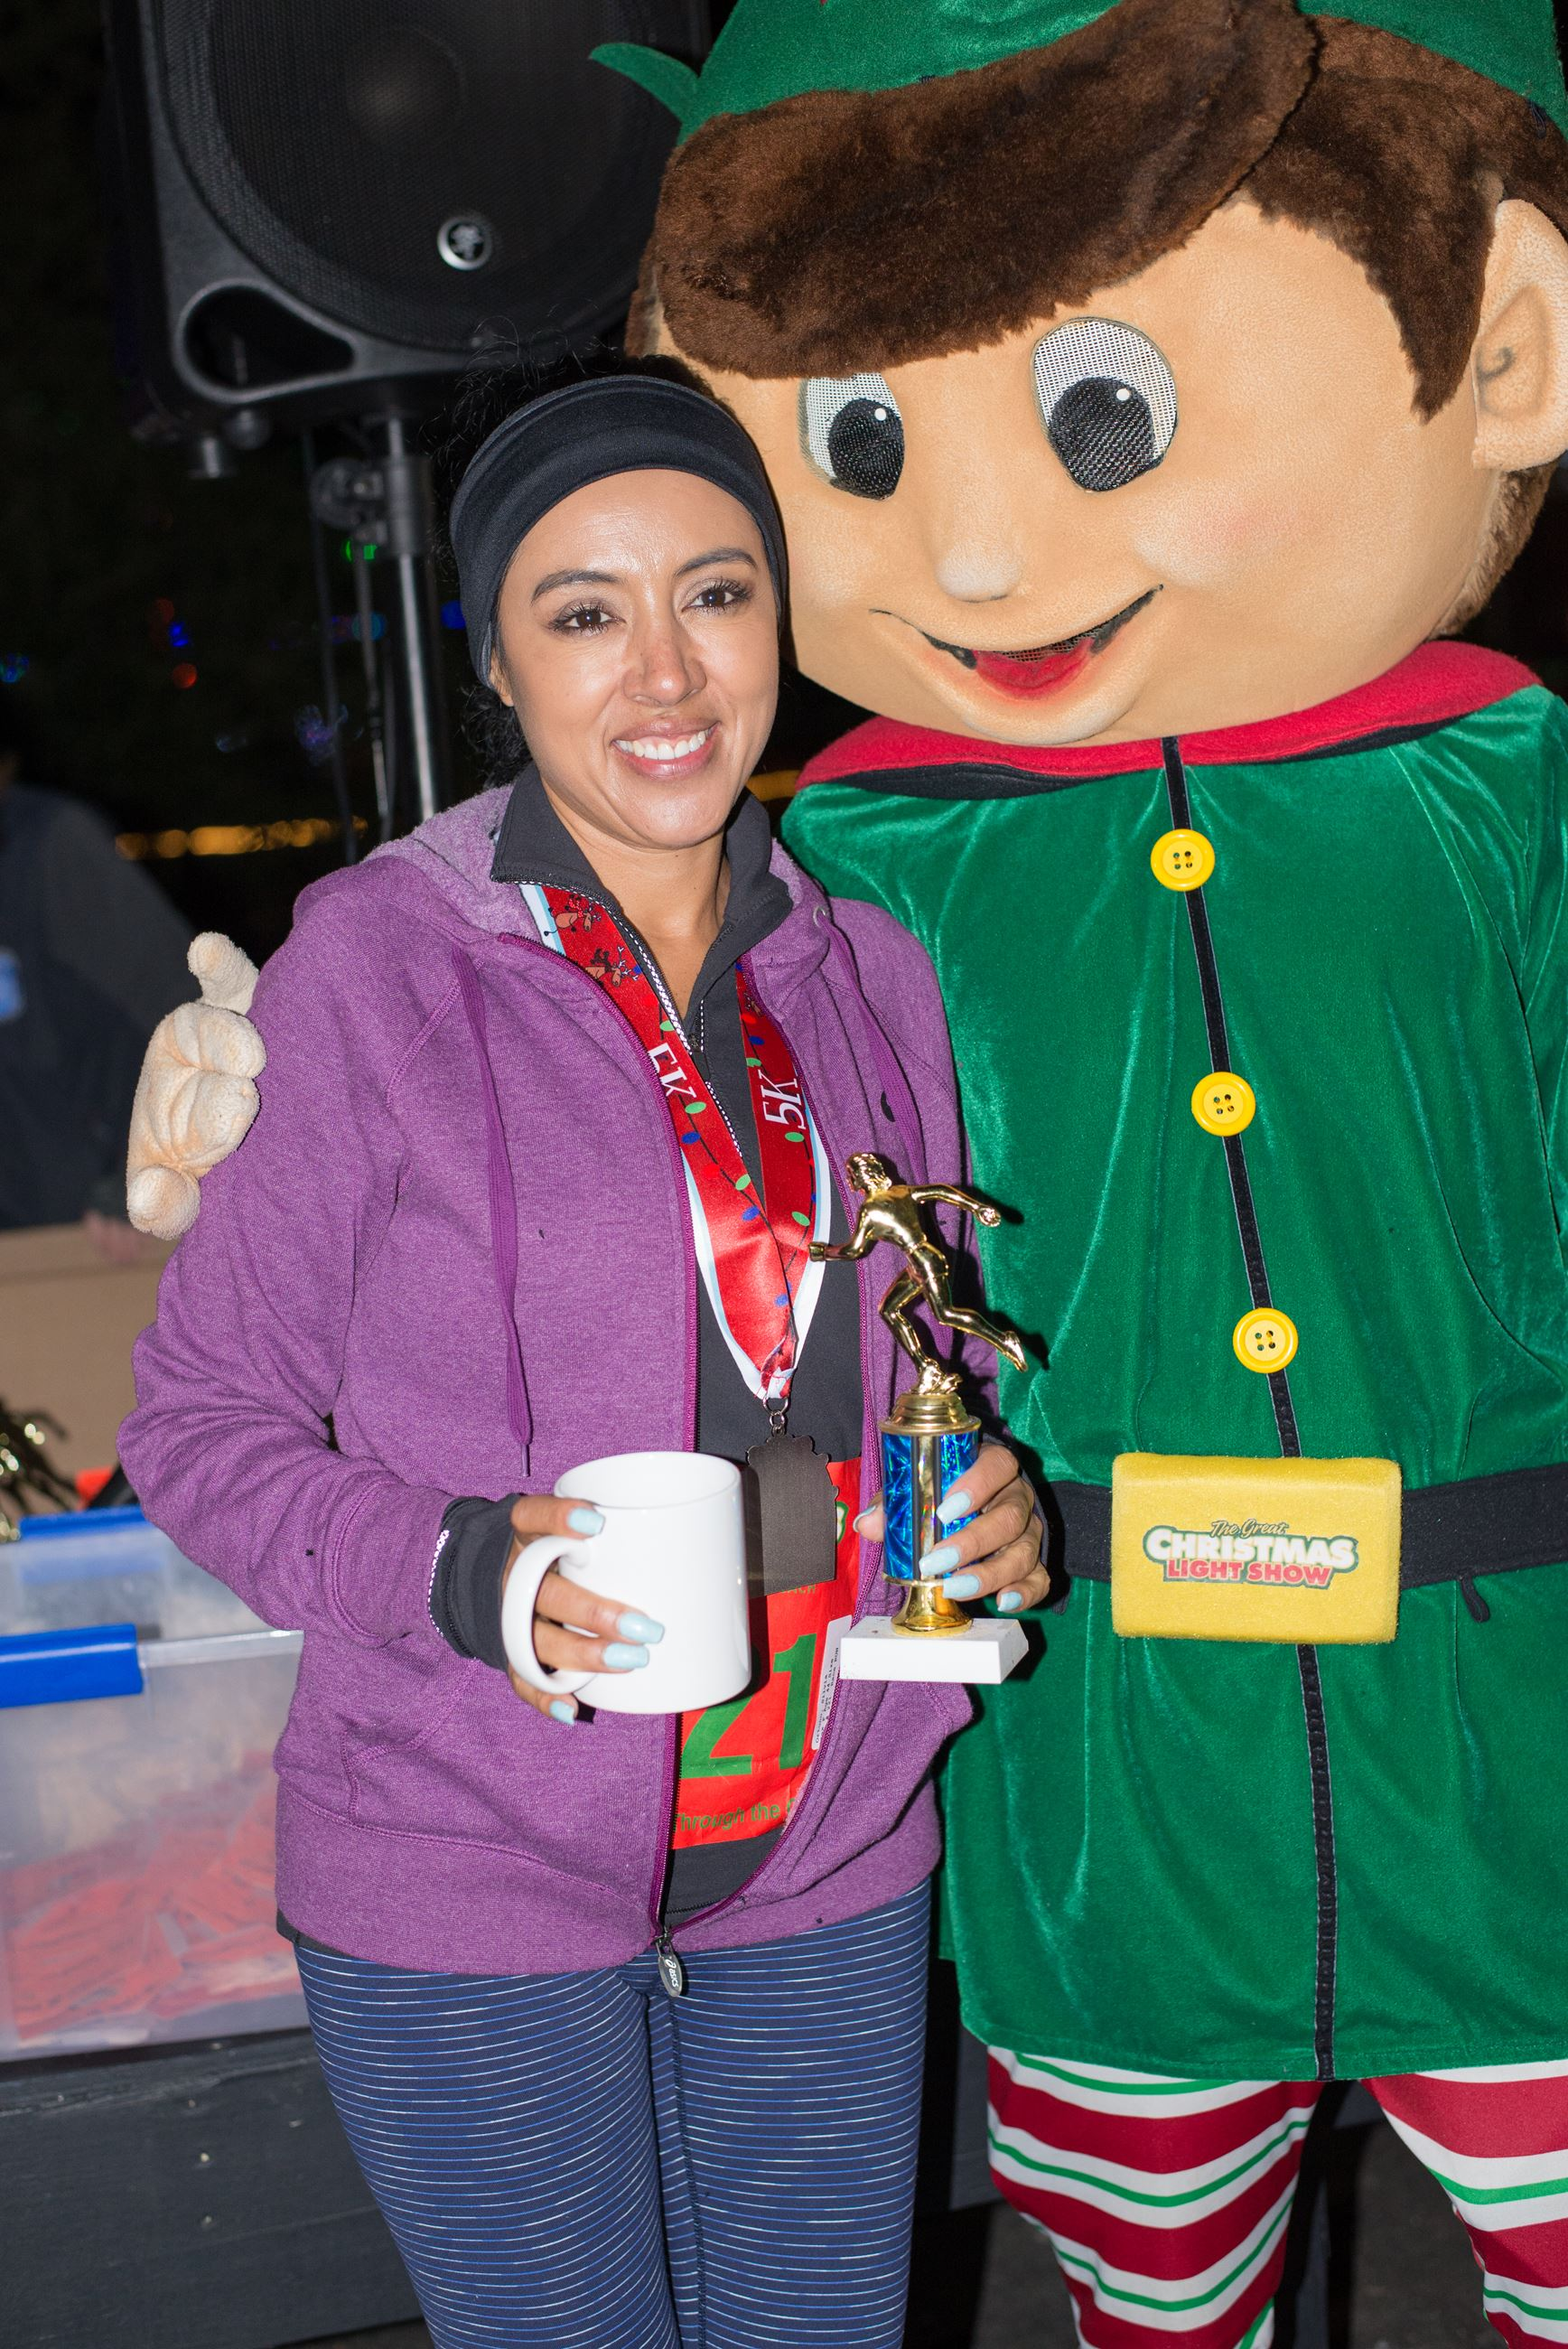 Woman Holding a Mug and Posing with an Elf